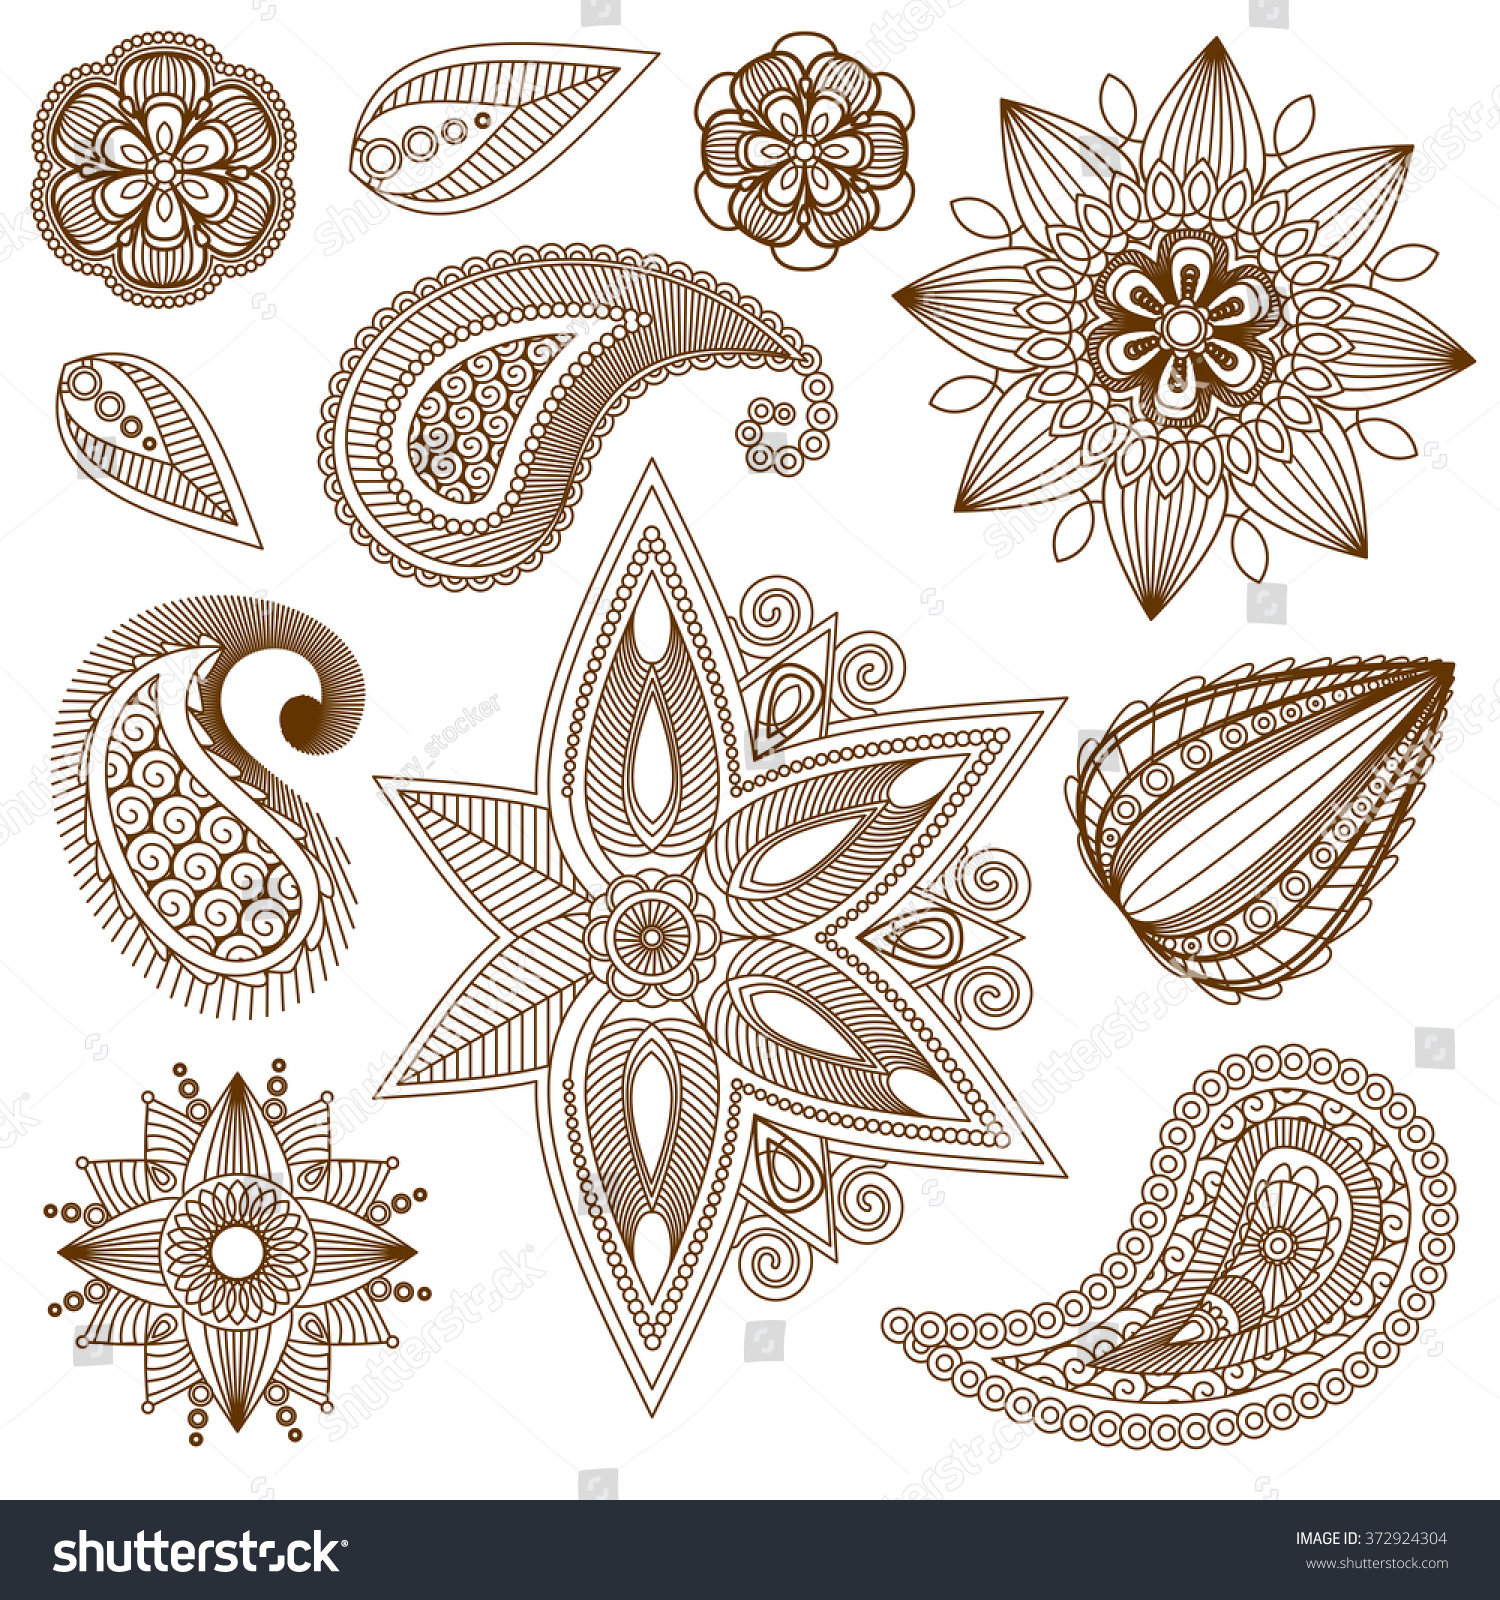 Henna Tattoo Vector: Henna Tattoo Doodle Vector Elements On Isolated Background